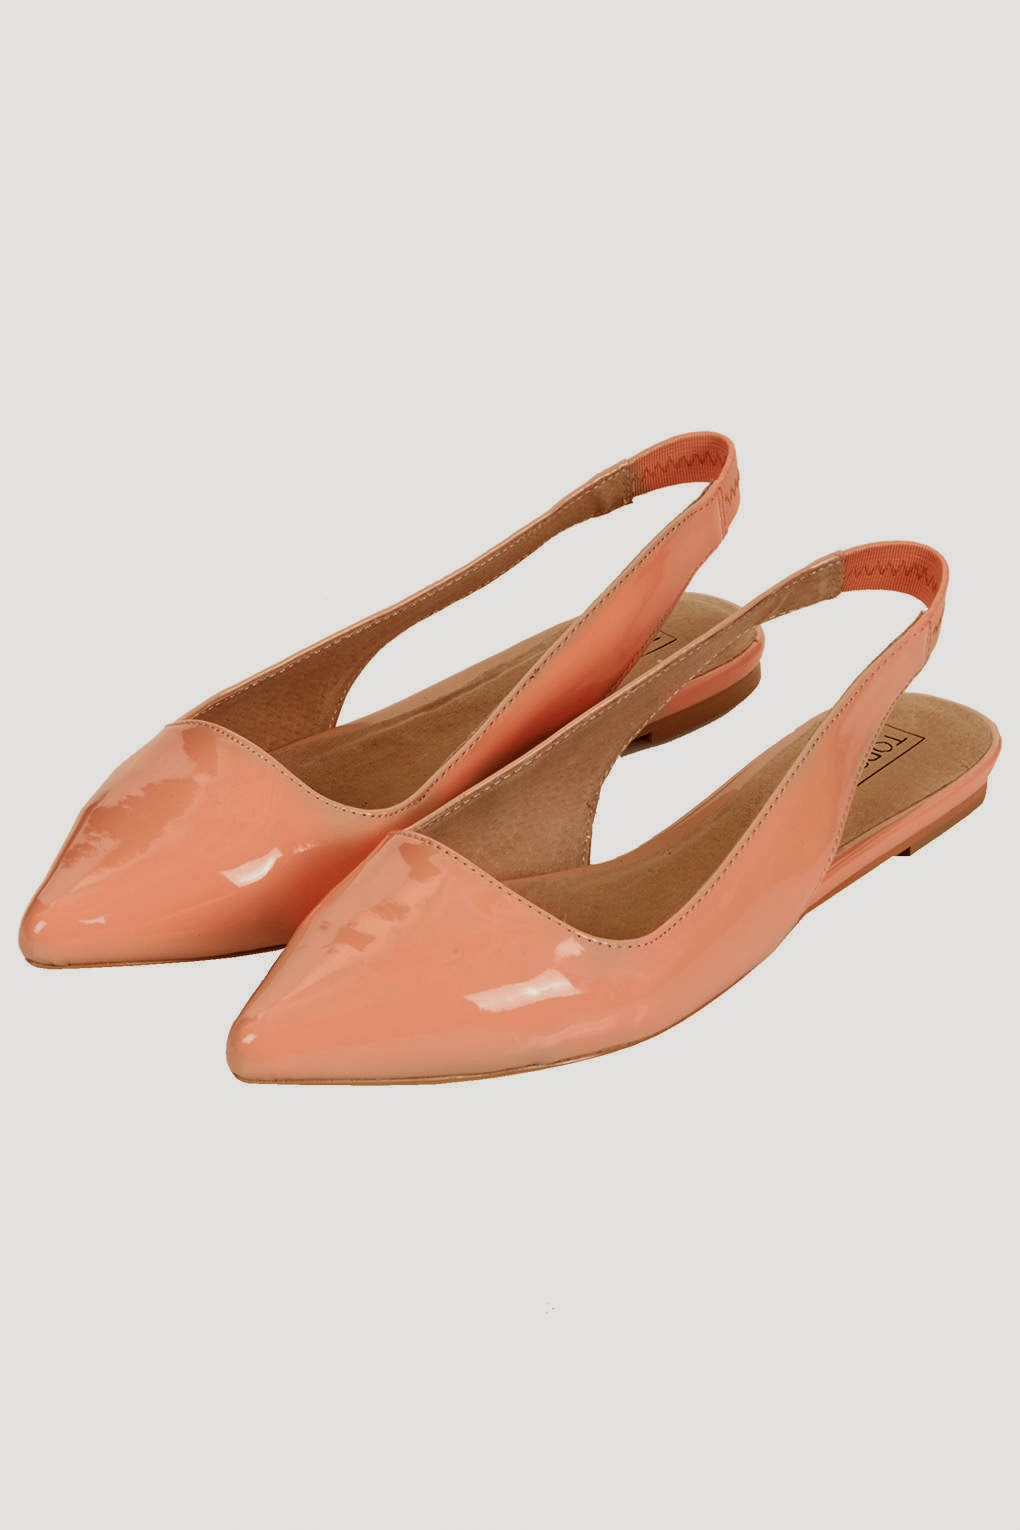 topshop pointed flats